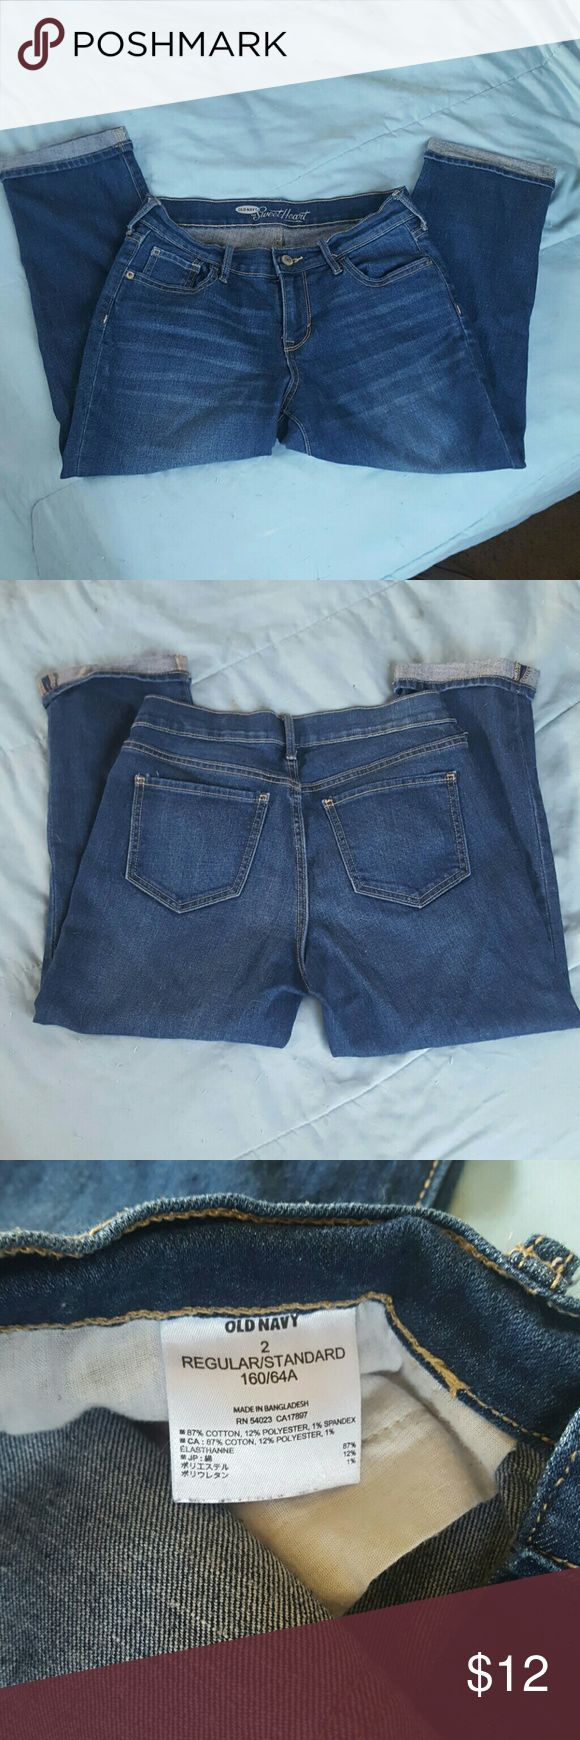 Old Navy Sweetheart Capri Jeans Old Navy Capri Jeans Sweetheart cut, excellent condition. Perfect for Spring and Summer! Old Navy Jeans Ankle & Cropped